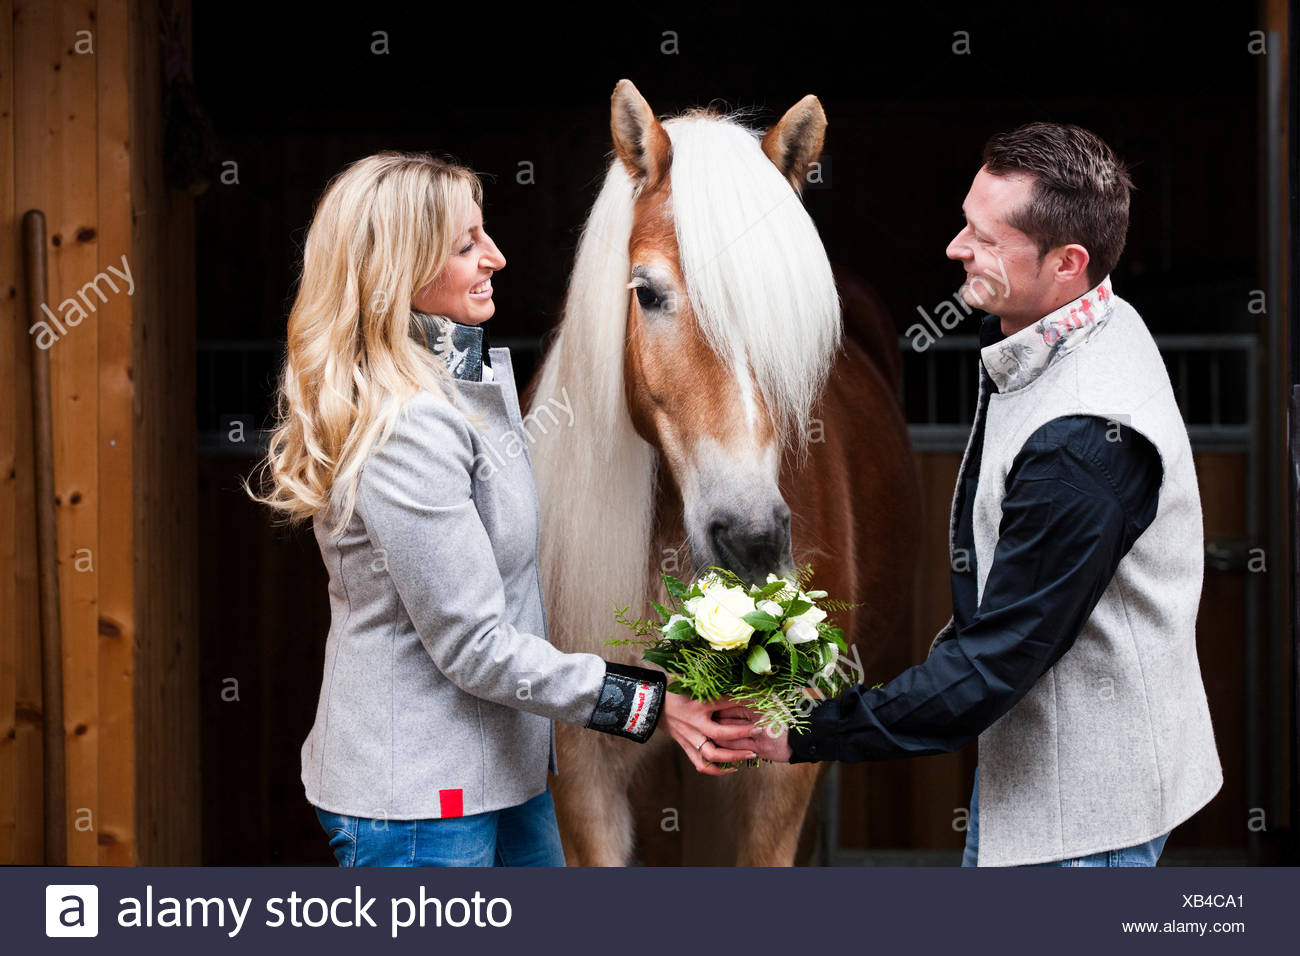 Man giving a woman flowers, Tyrolean Haflinger eating the flowers, North Tyrol, Austria - Stock Image